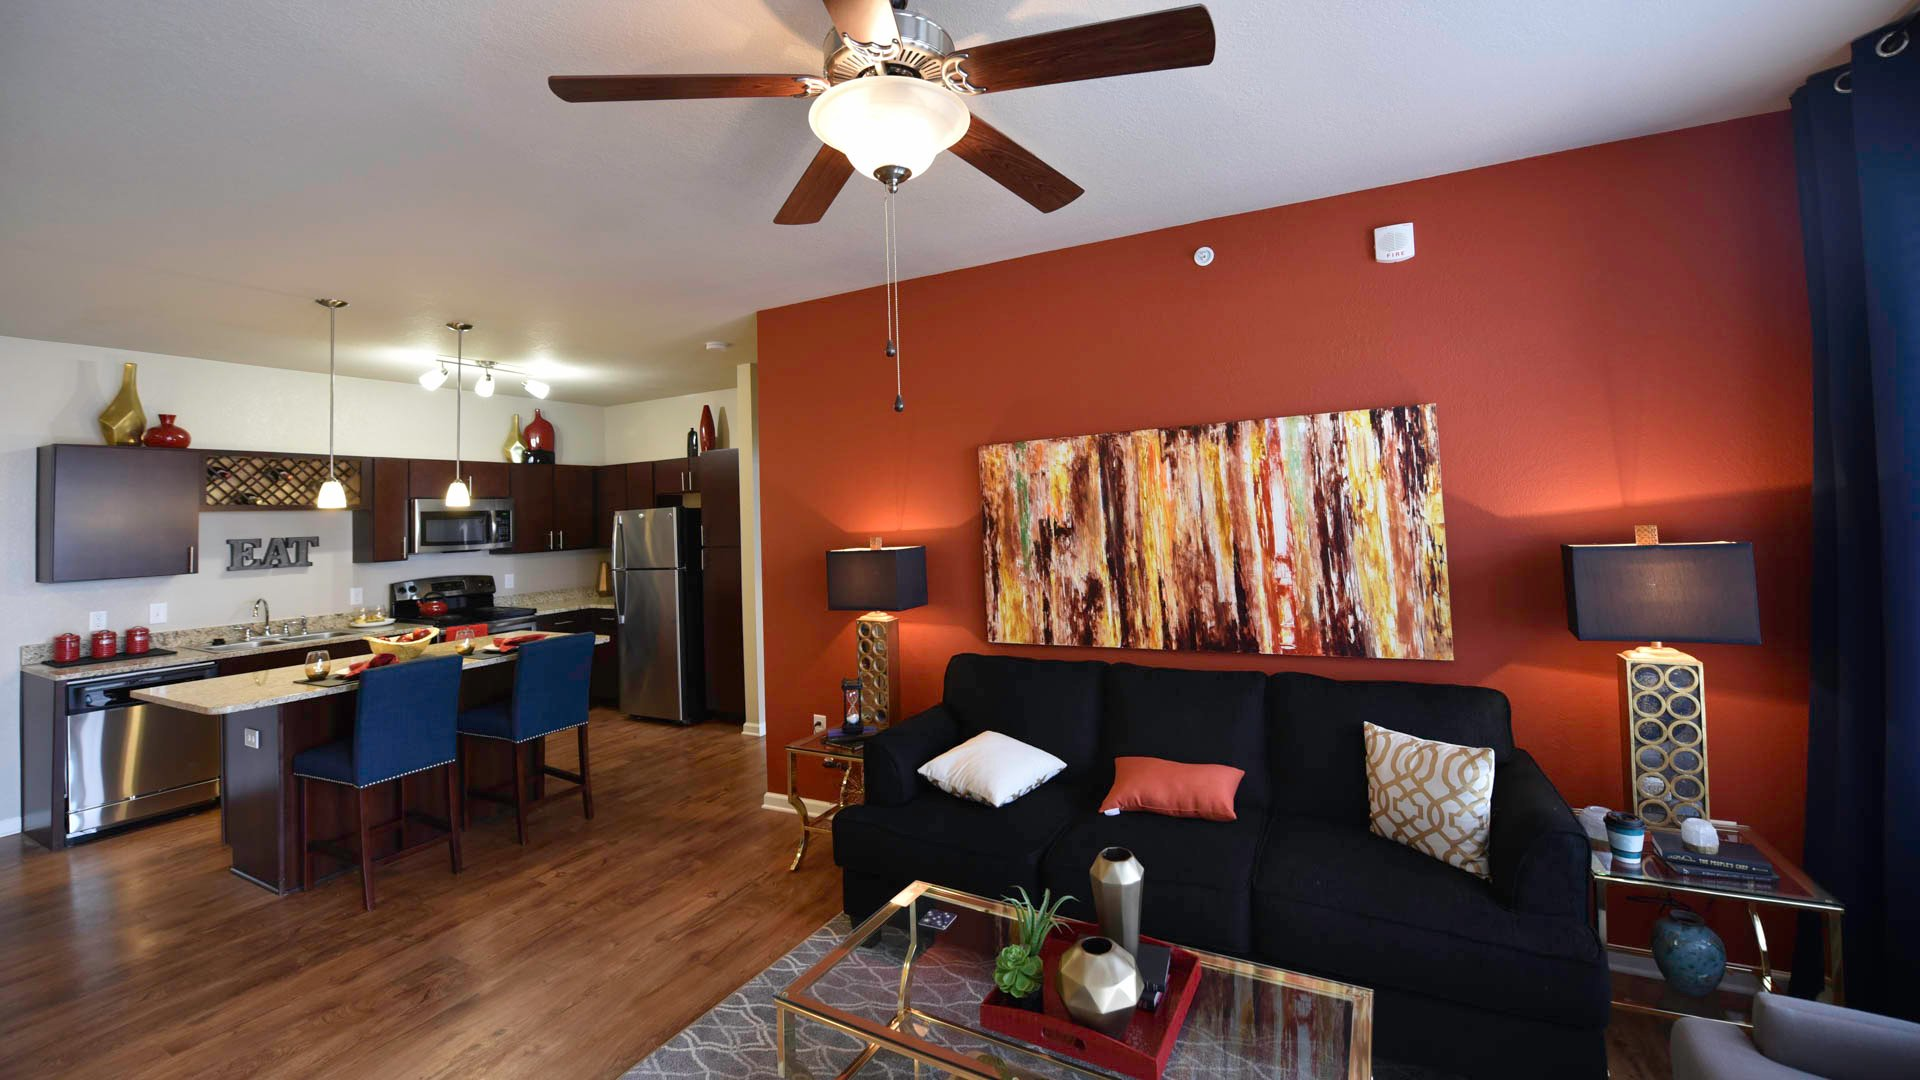 Springs at Liberty Township open concept living room and kitchen